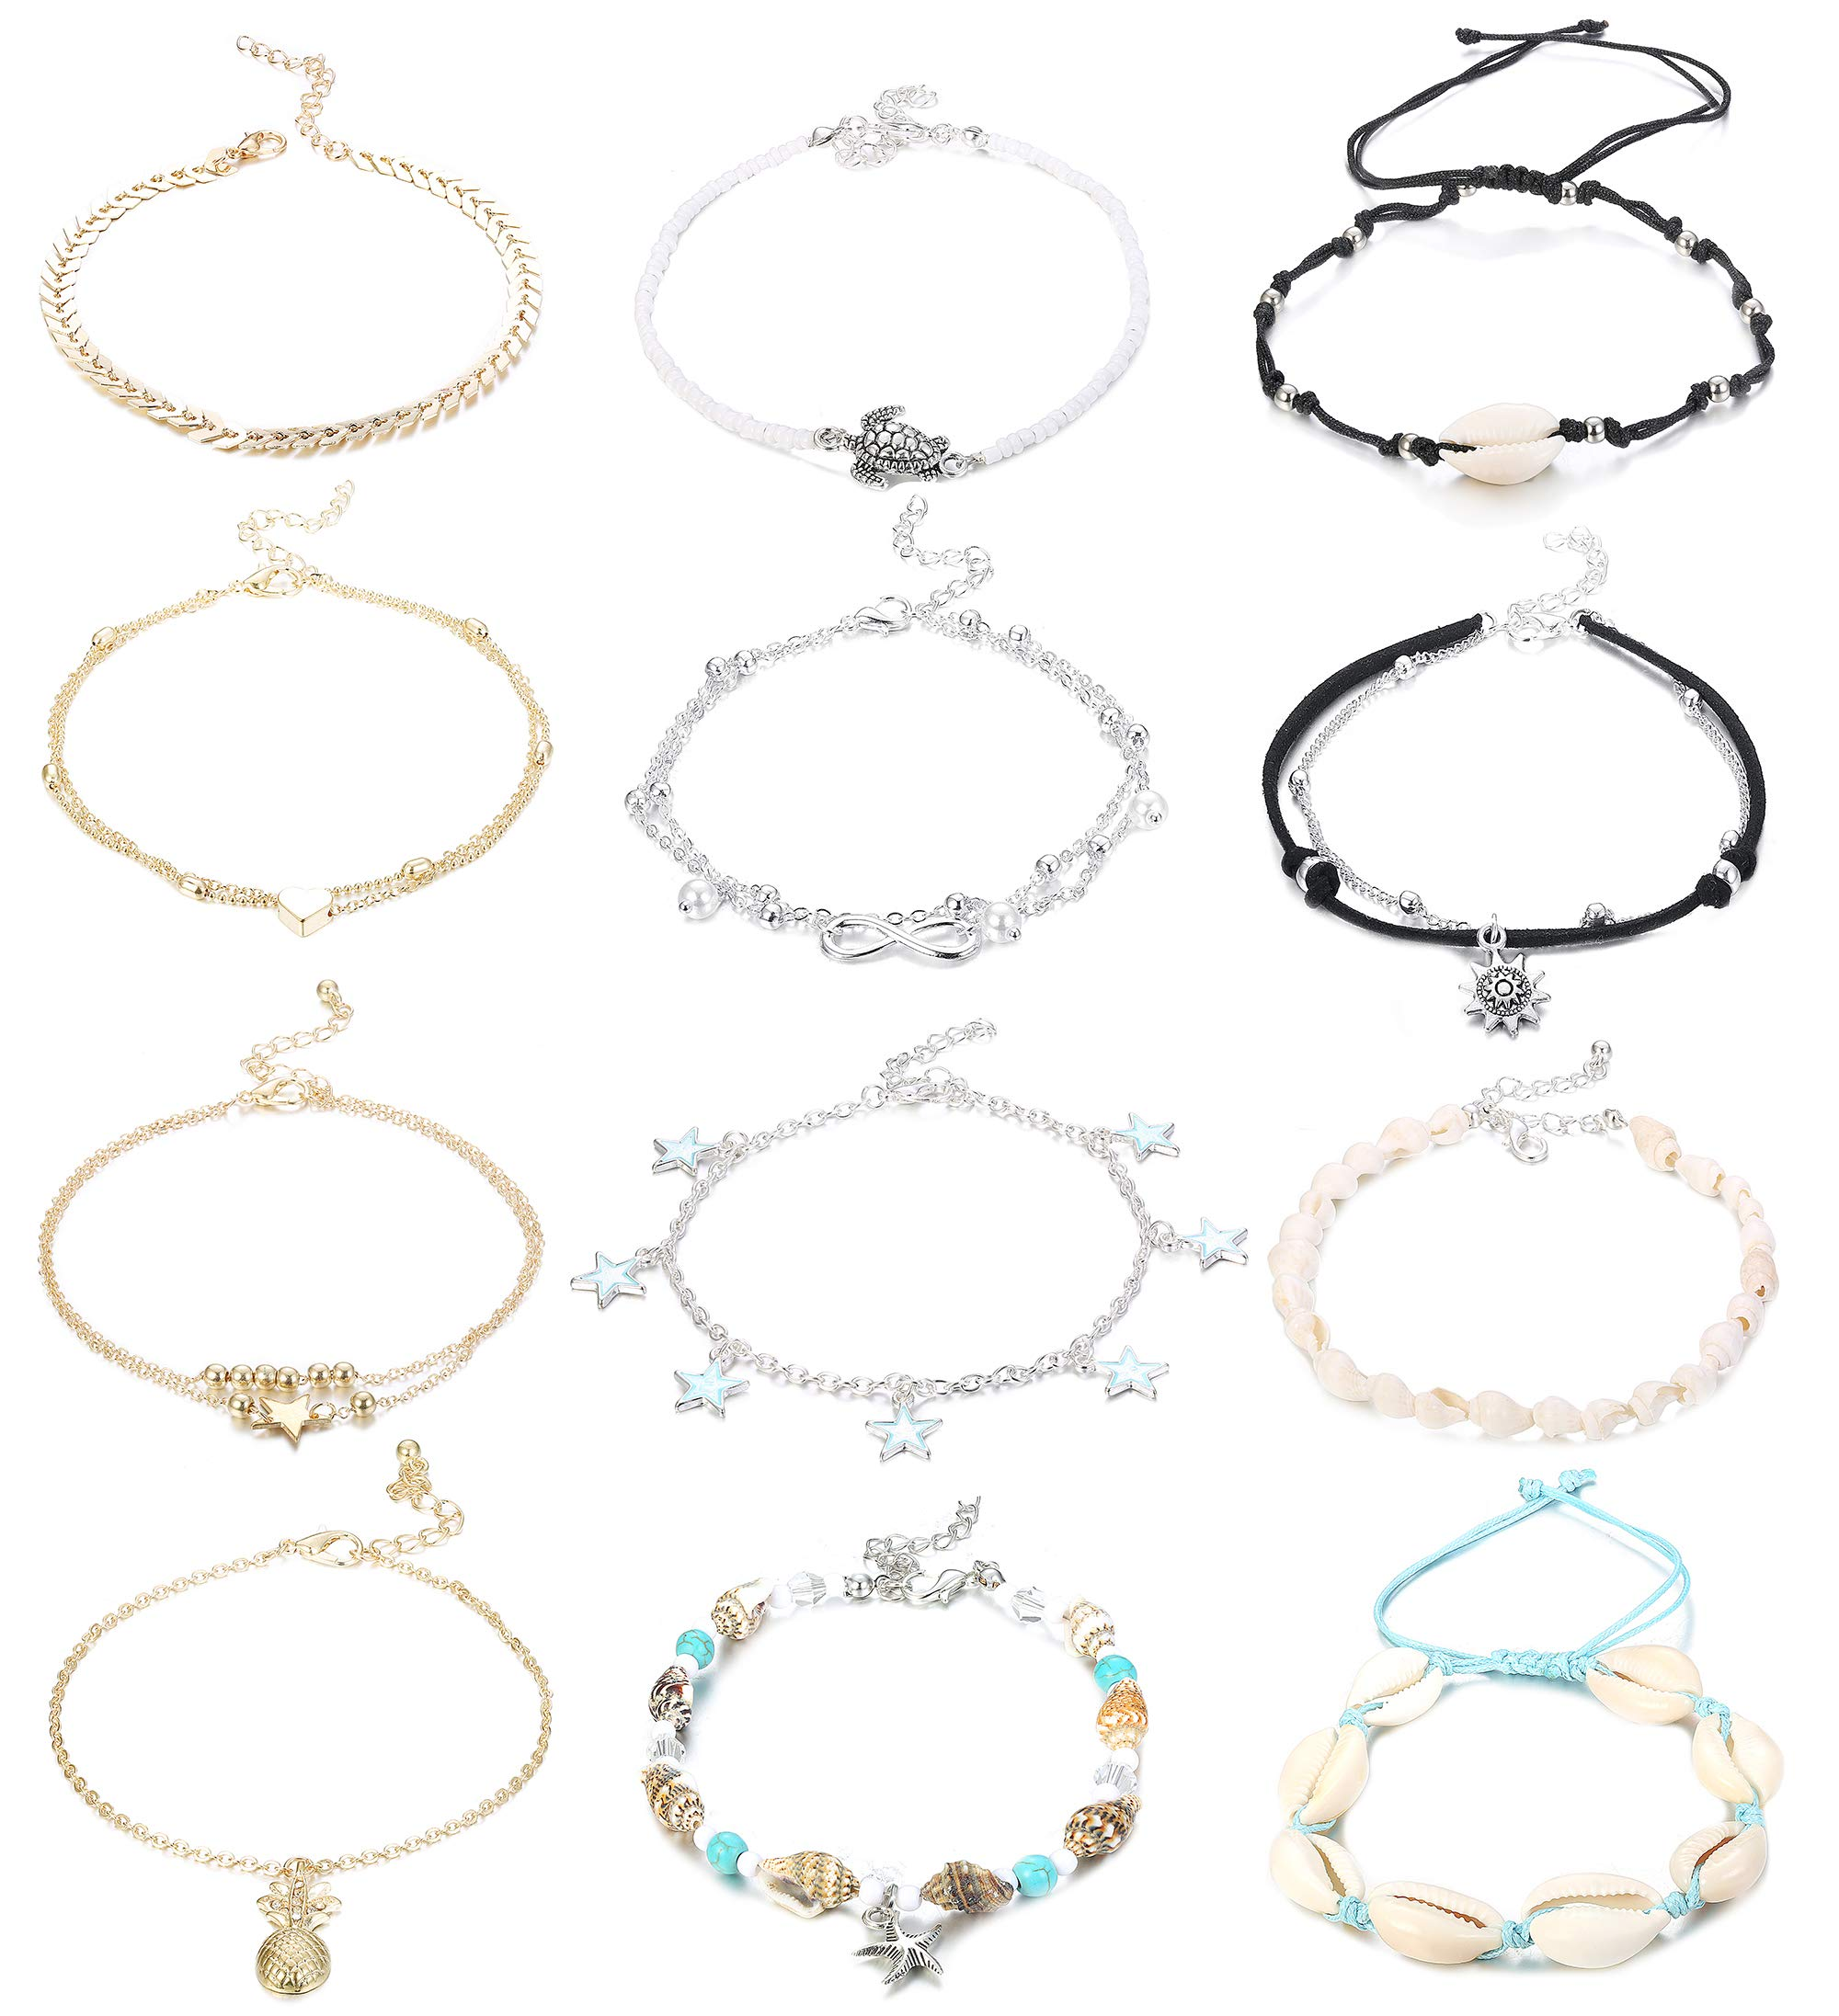 Hicarer 25 Pieces Ankle Chains Bracelets Adjustable Beach Anklets Boho Foot Jewelry Set for Women Girls Favors